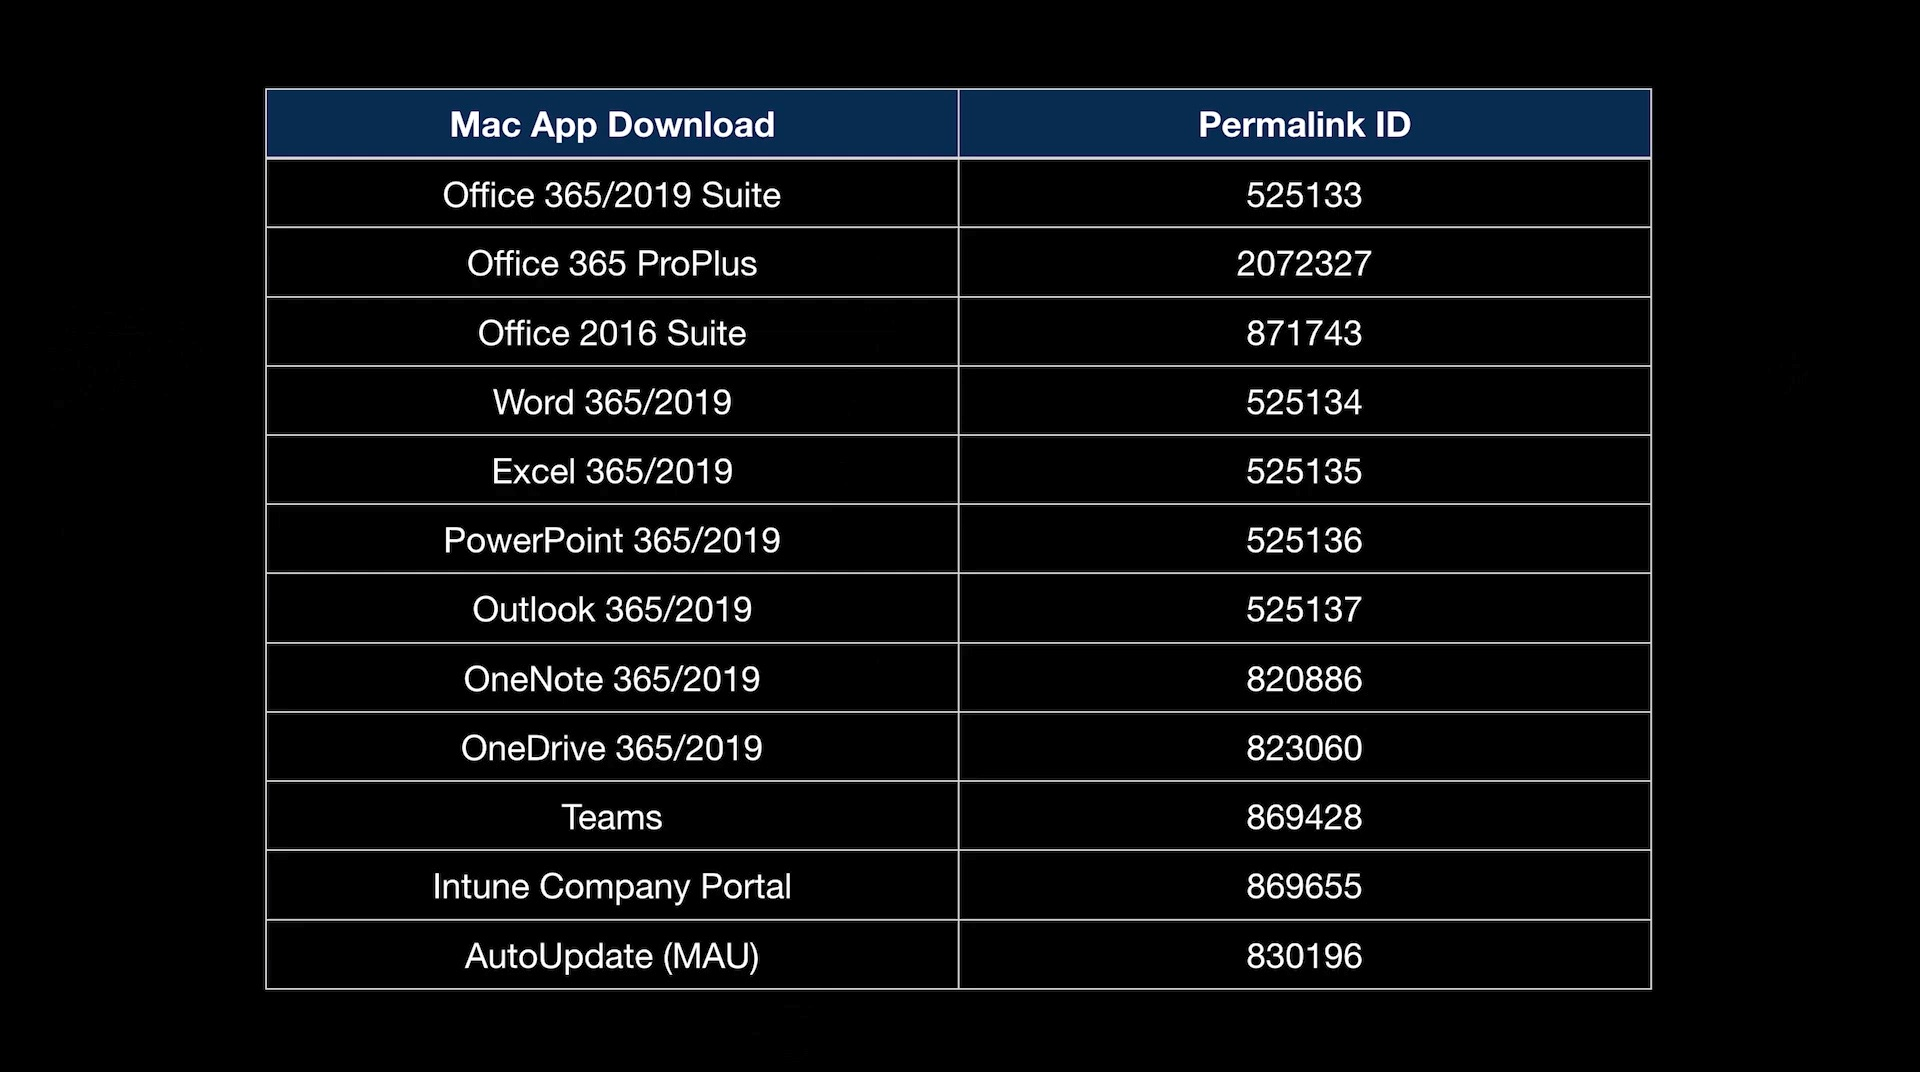 Control Office for Mac with Terminal download permalink id